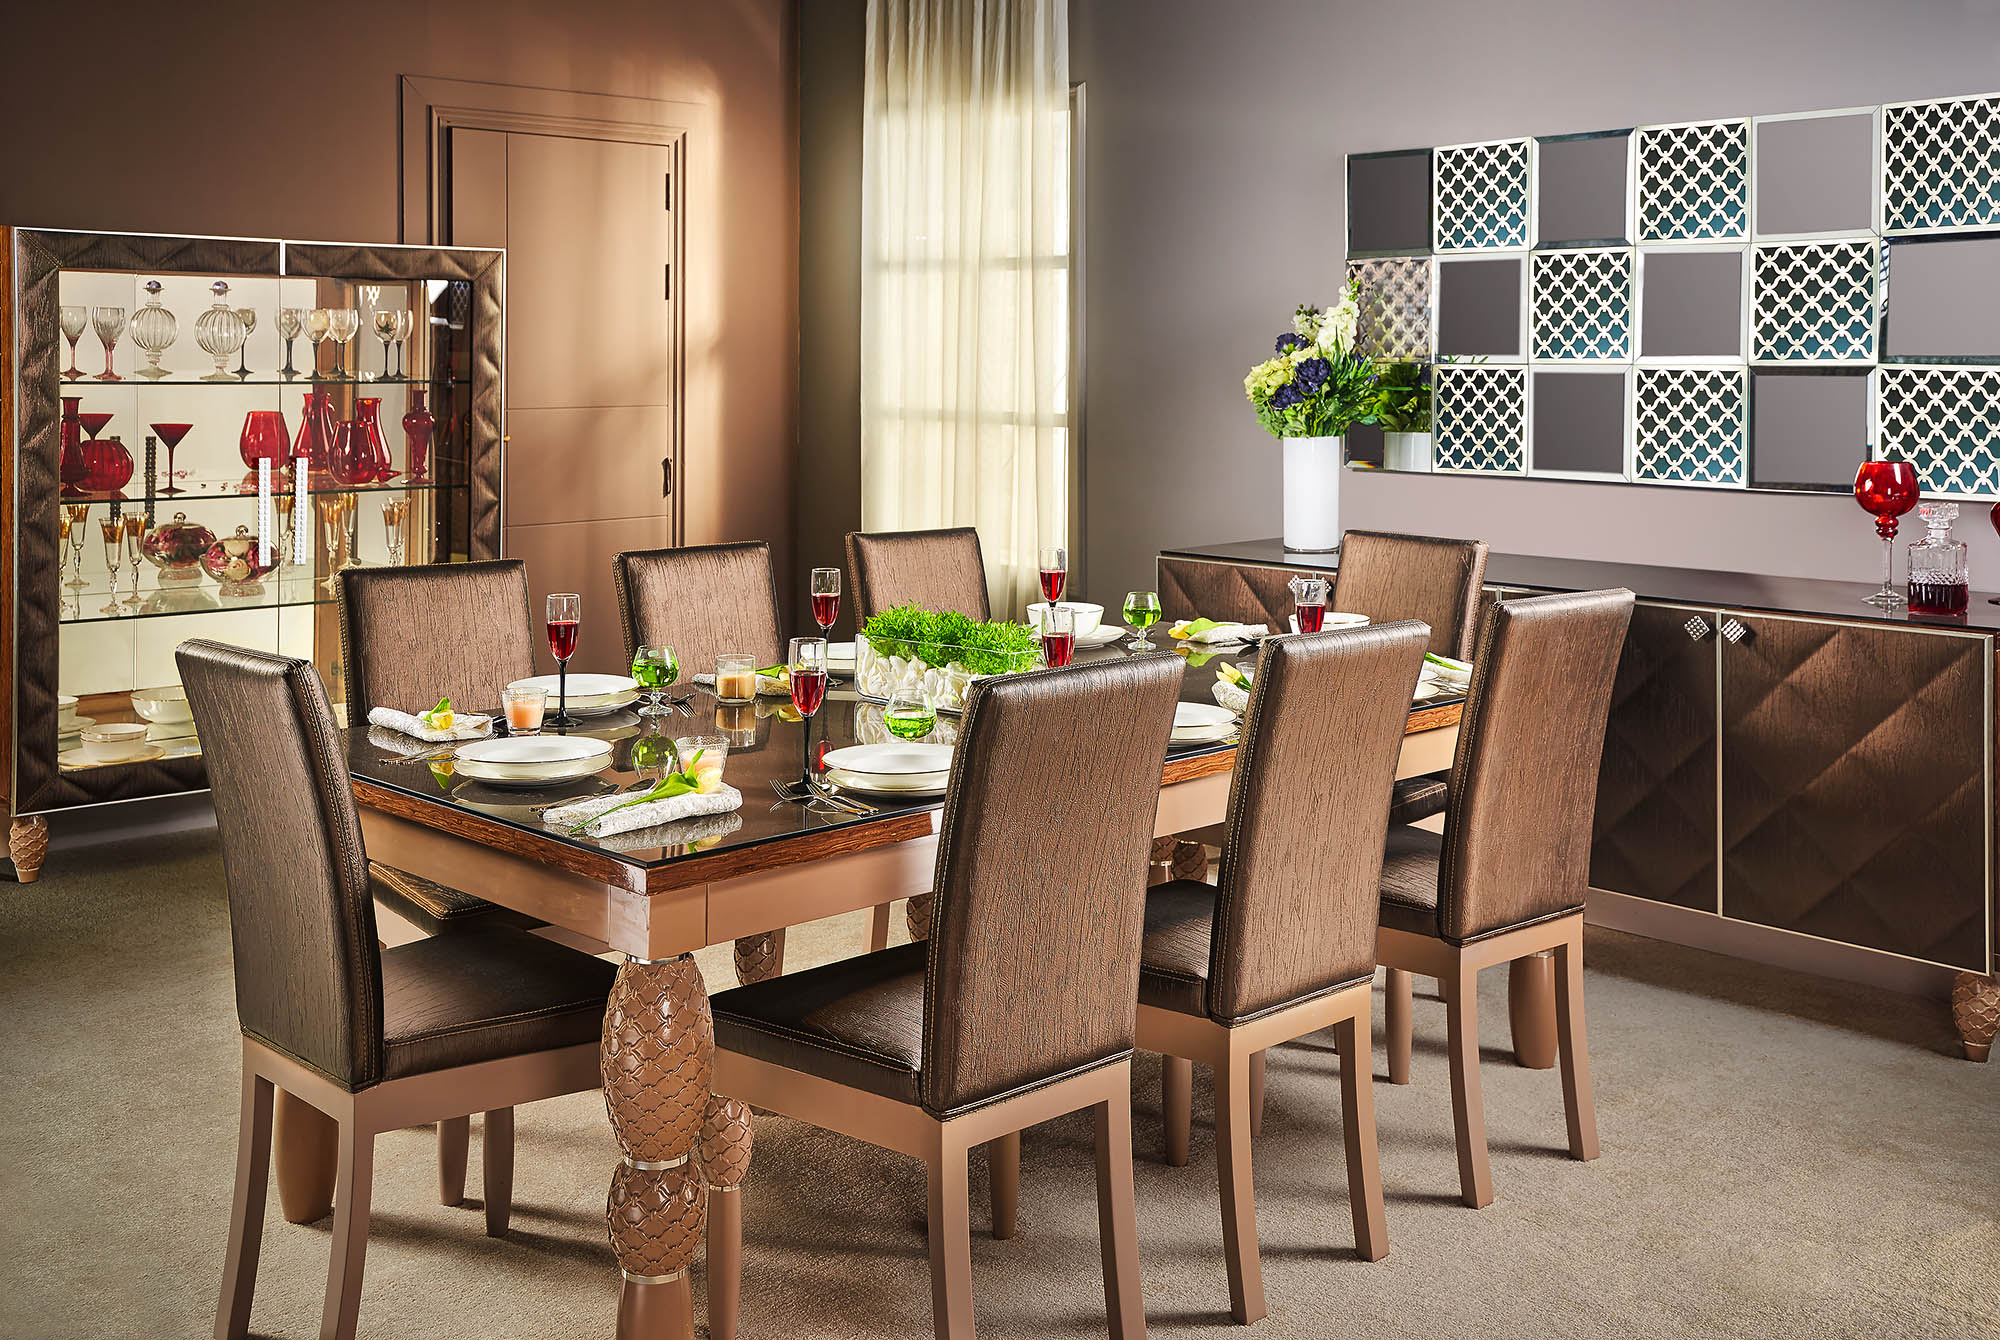 luxury dining room - Richie by shoulah - Mohamed Abdel-Hady Photography